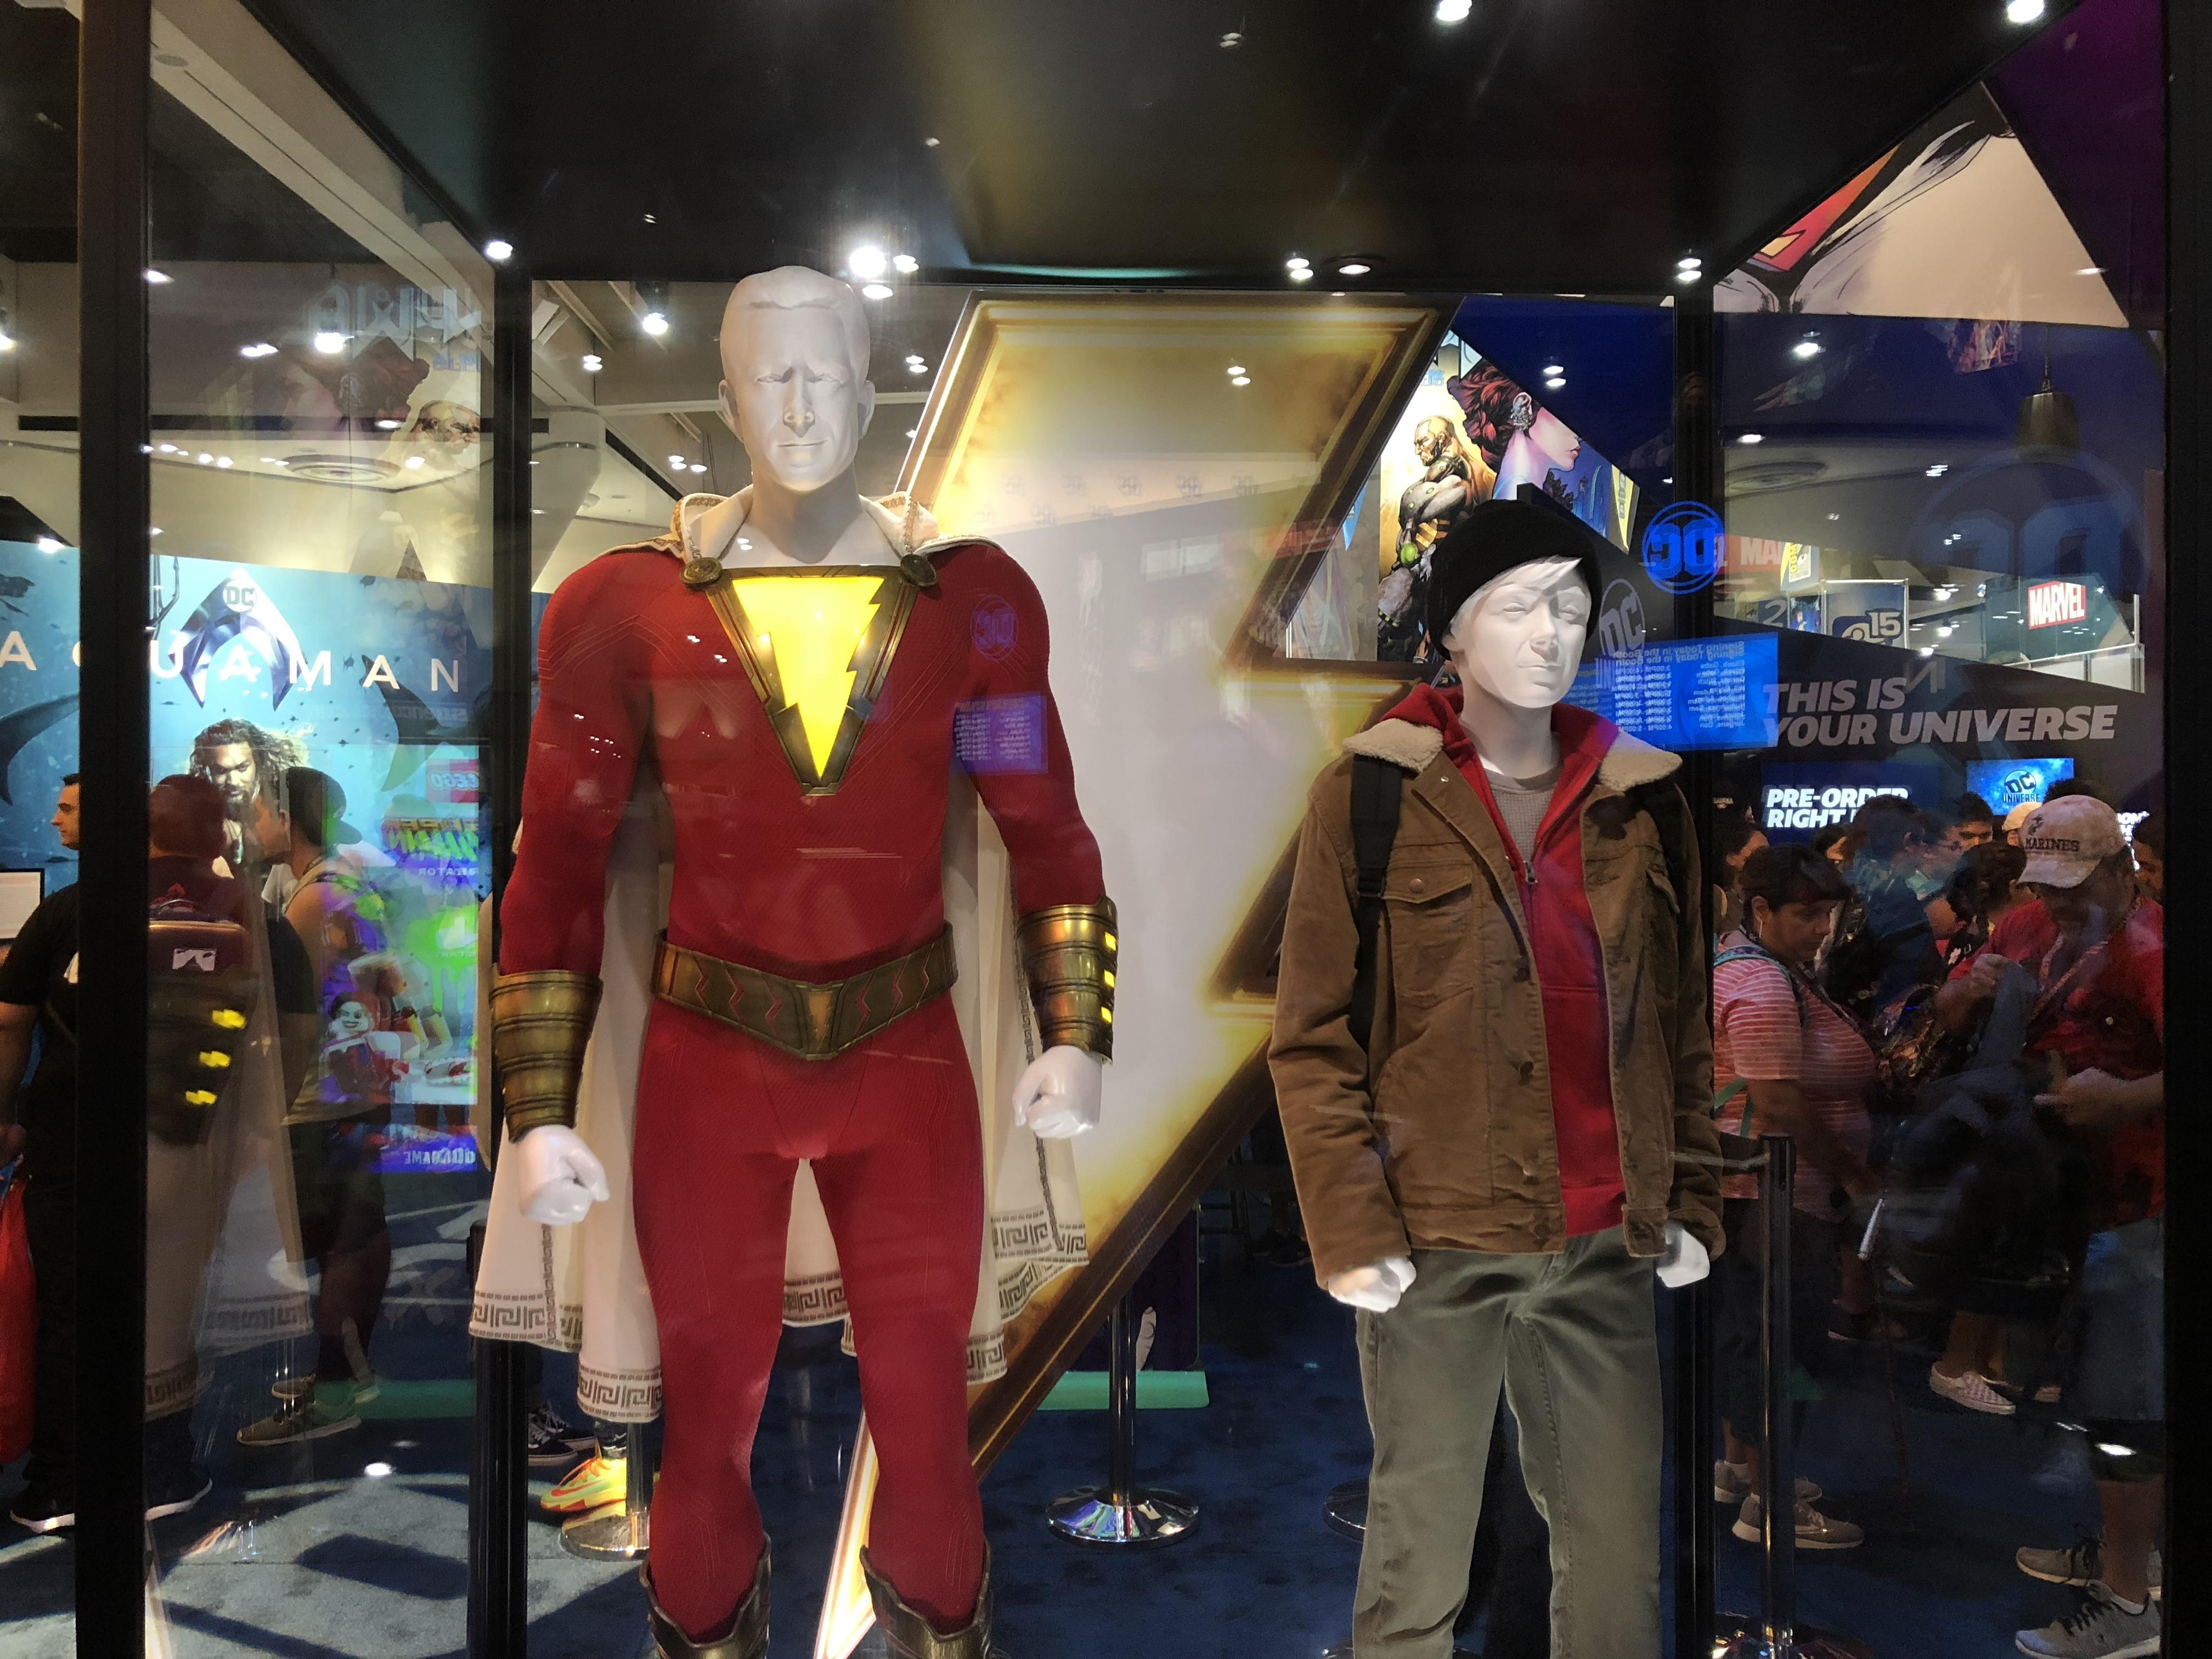 <p>The Shazam costume in particular looks <em>much</em> better in person than it did in the early leaked photos.&nbsp;</p>